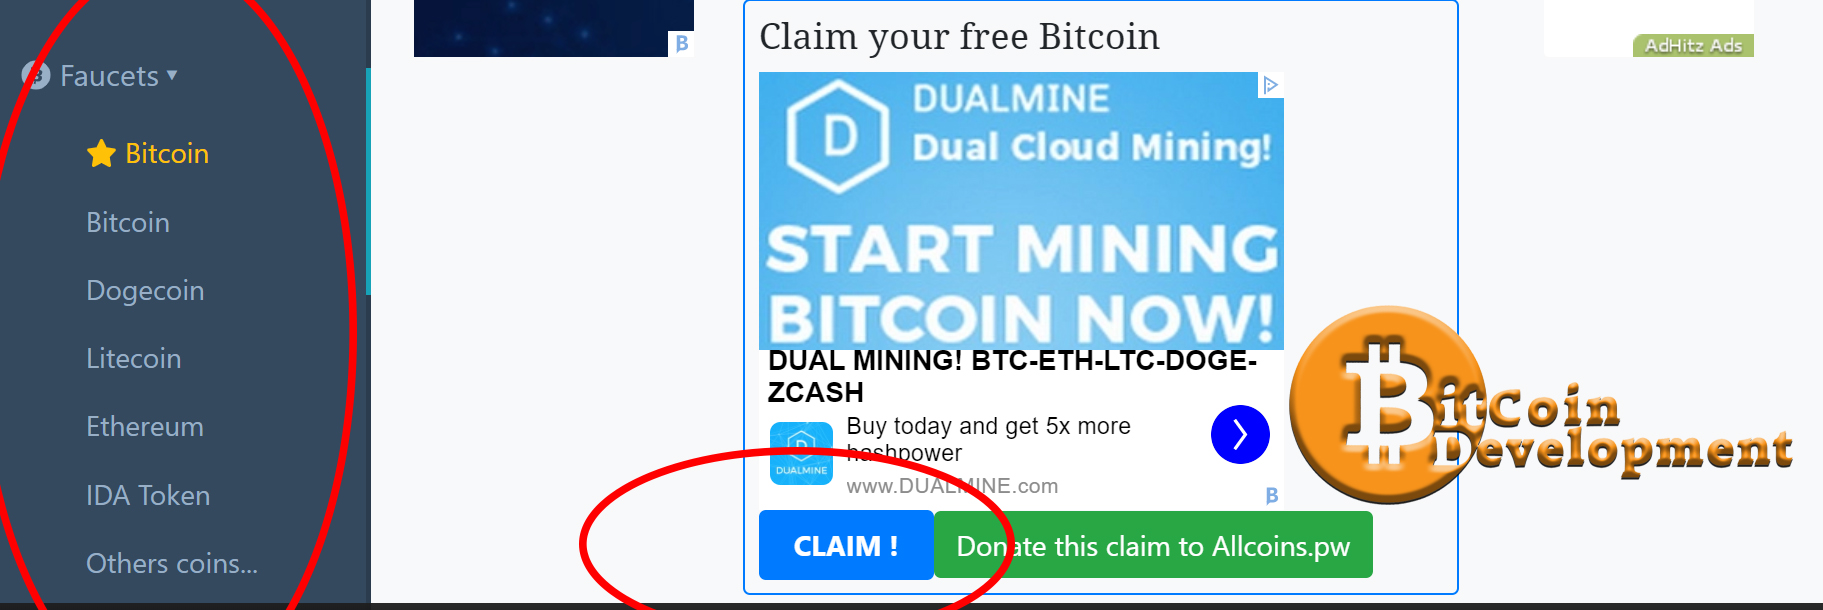 Allcoins.pw Claim